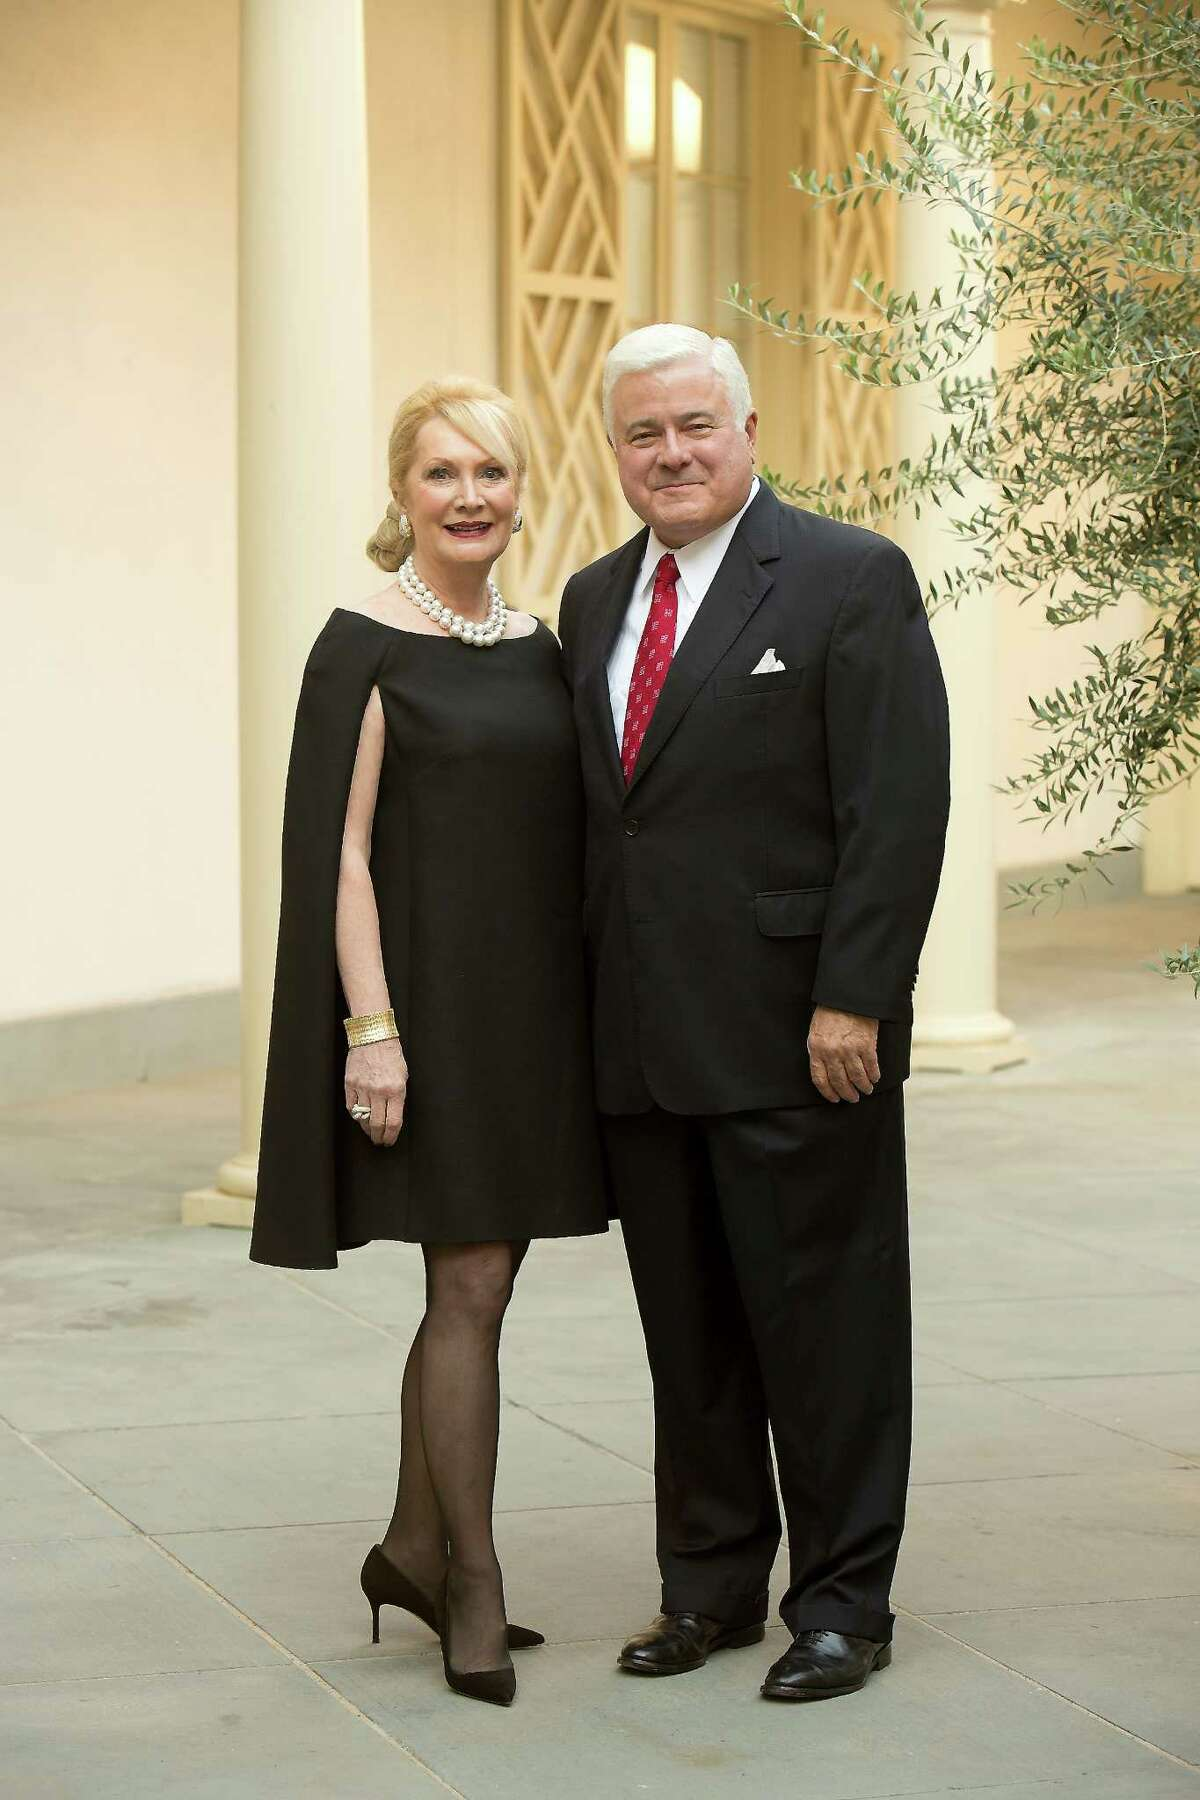 Kathi and Bill Rovere